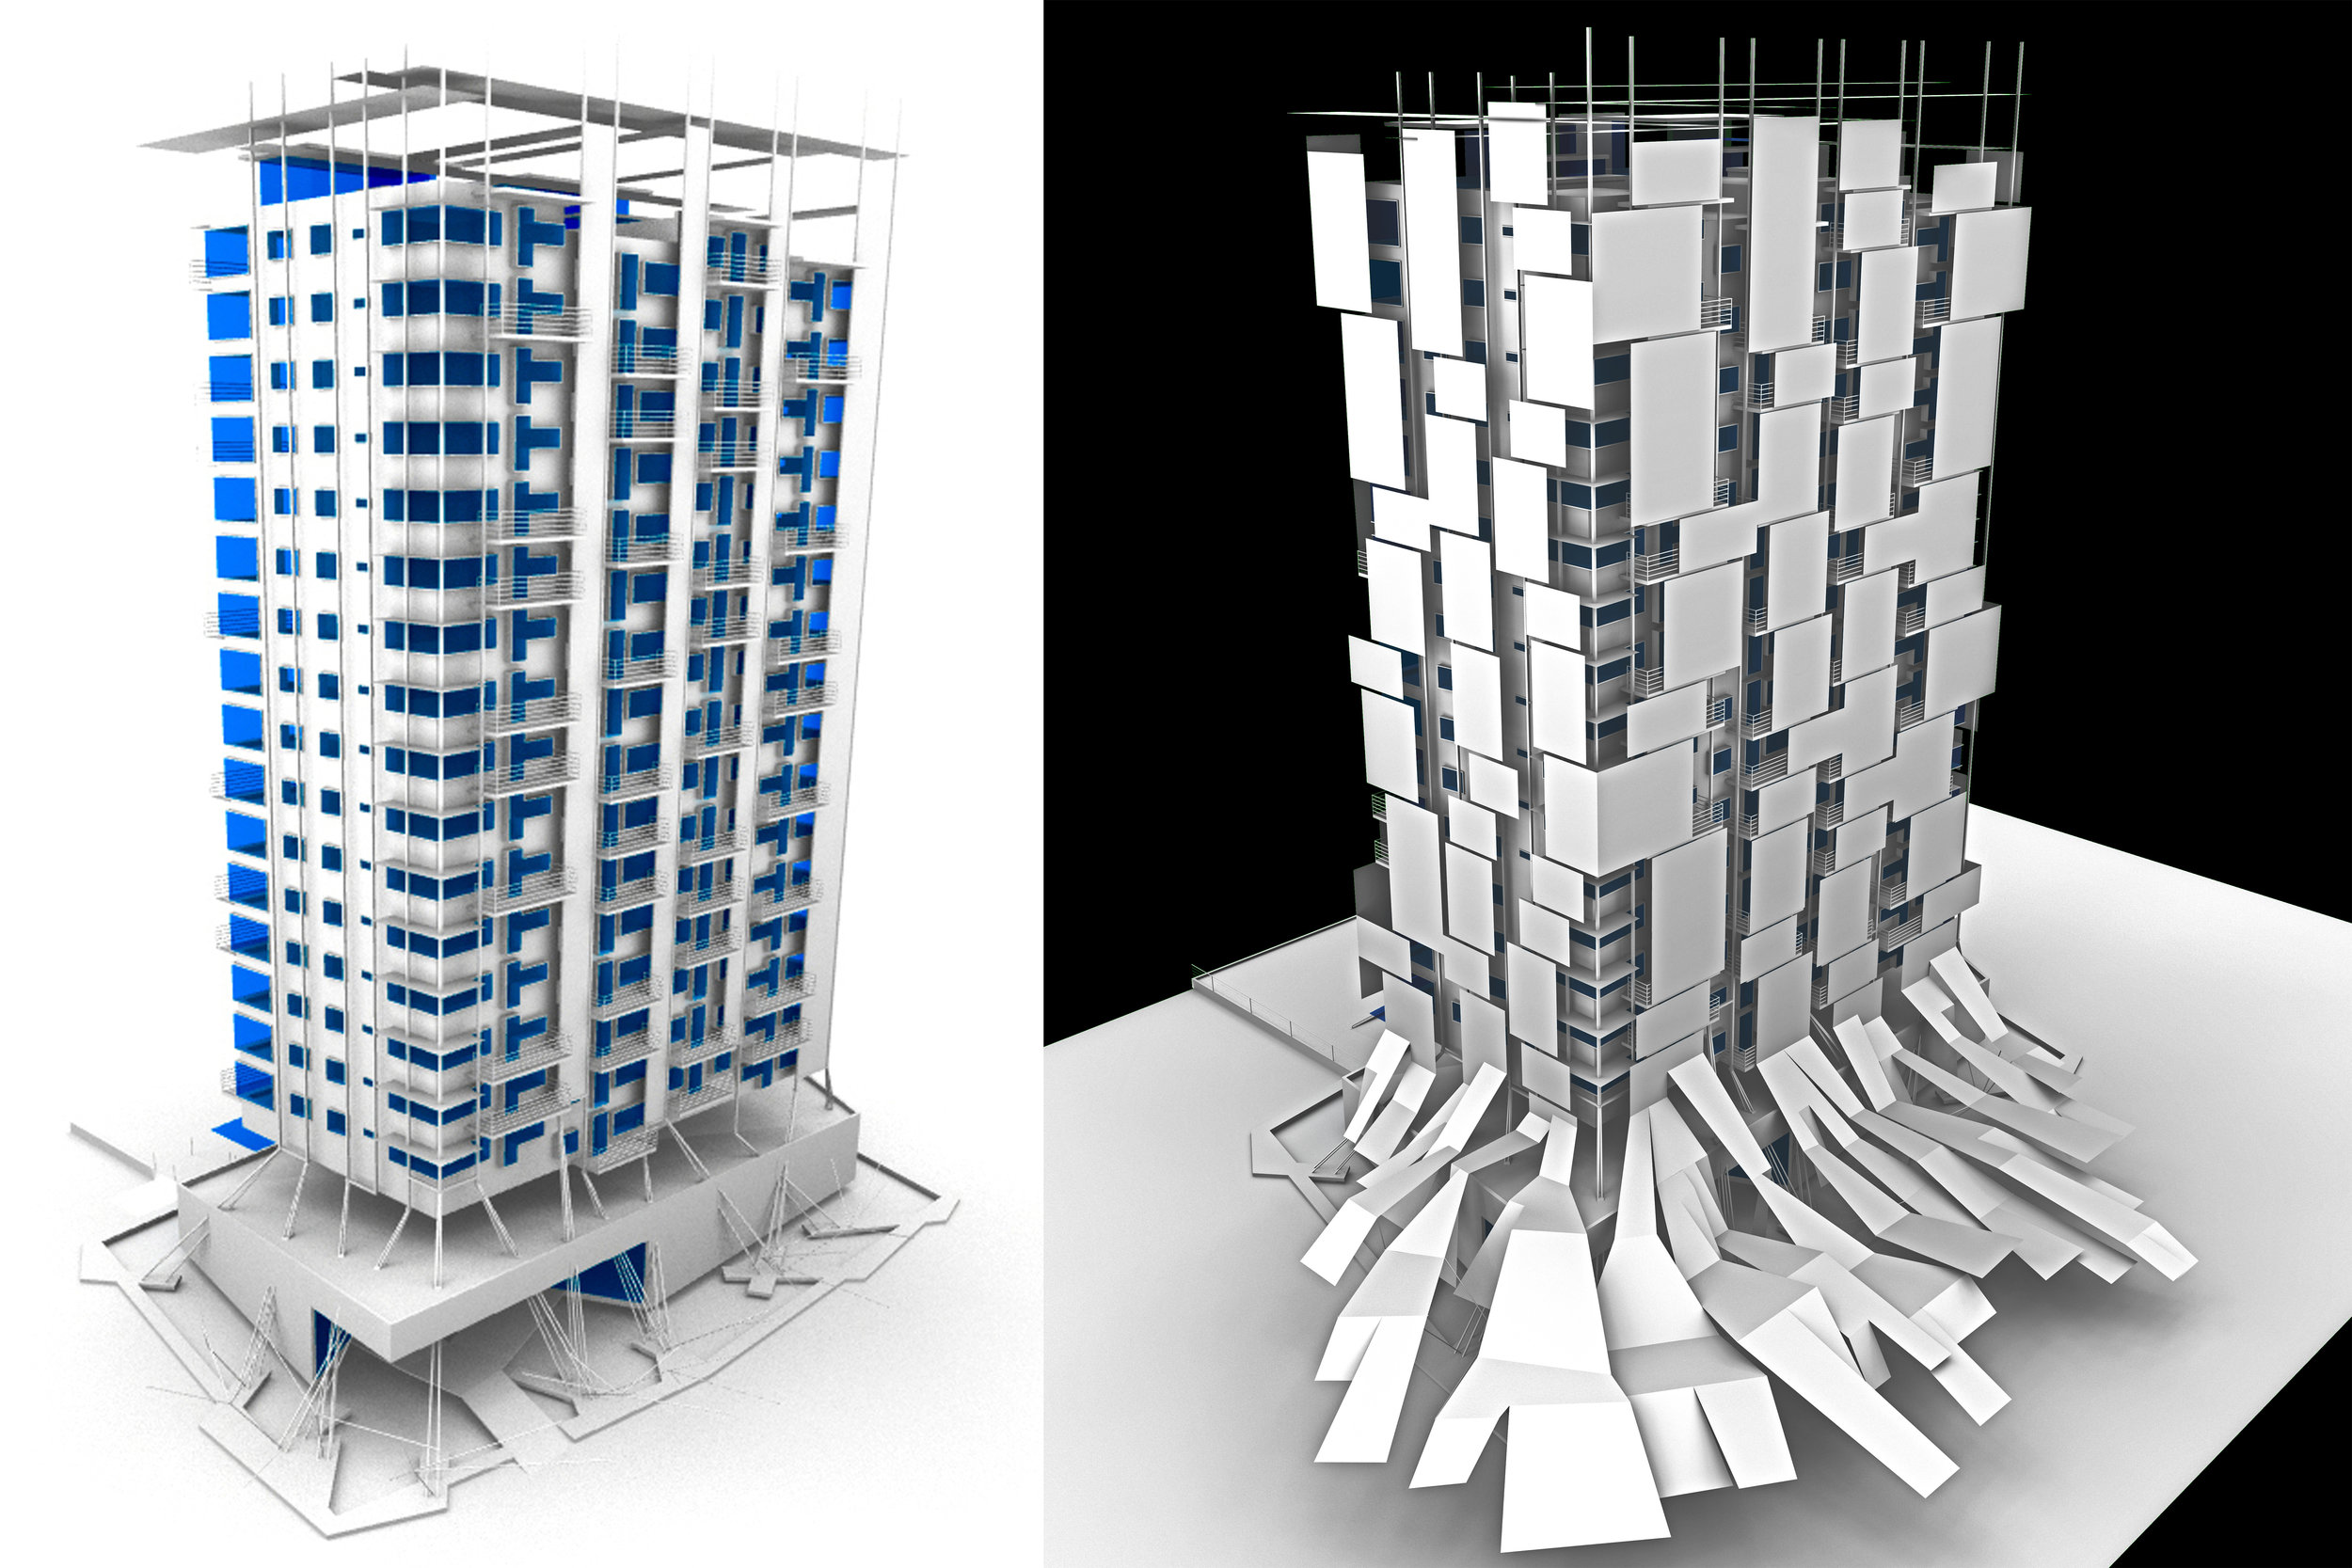 20.Tower_Render-Comparison-15_0429-small.jpg